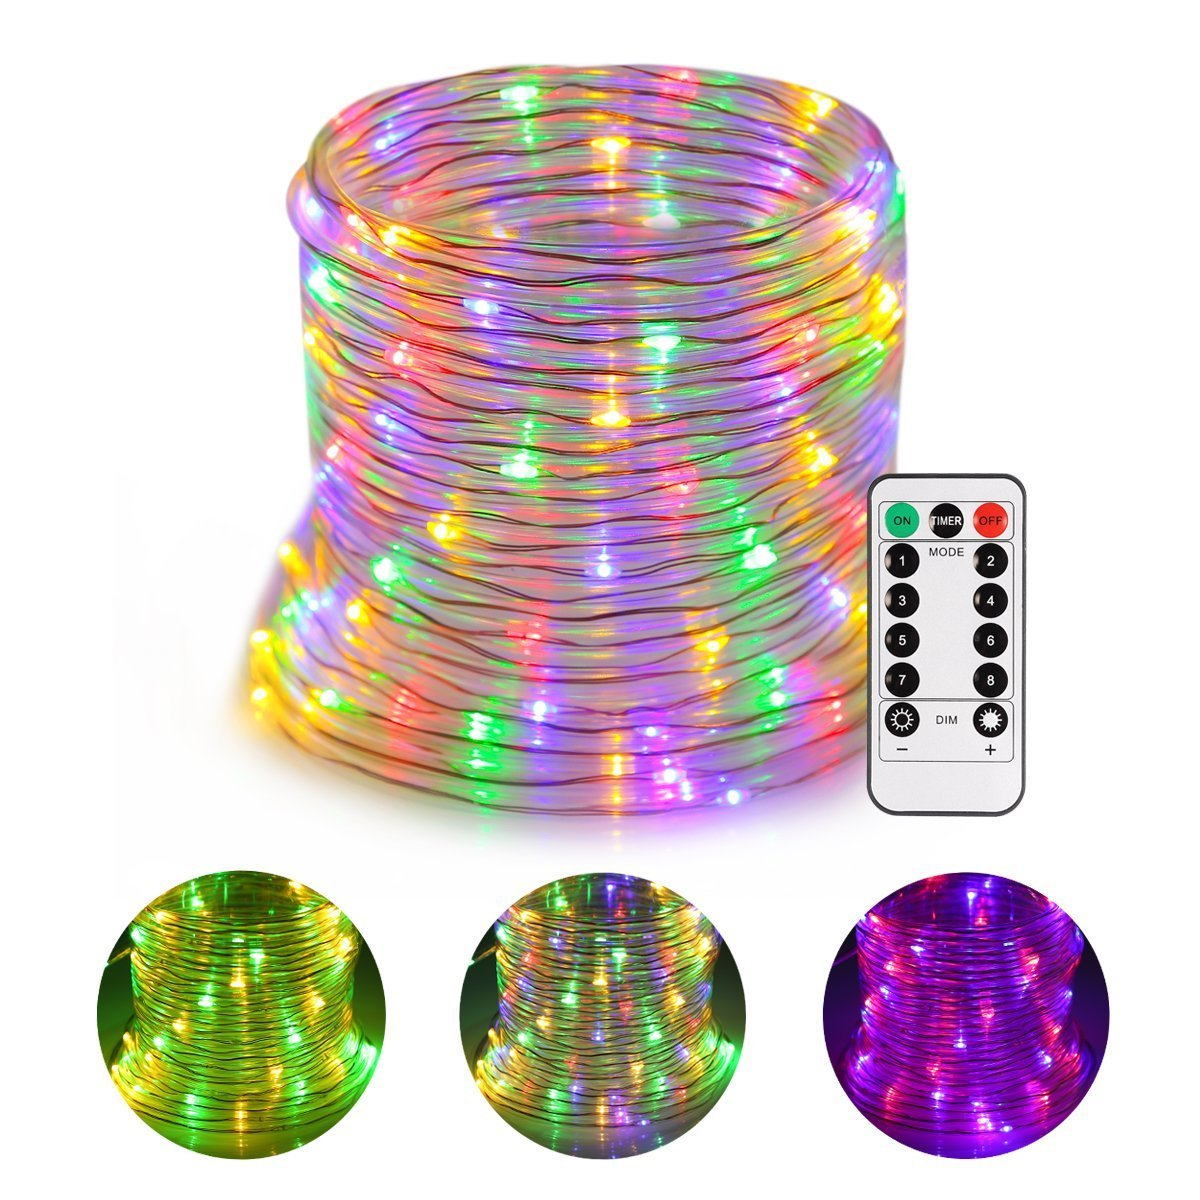 GreenClick LED Twinkle Rope Light Battery Operated 120 LEDs Color Changing Rope Lights with Romote Timer Waterproof 45Ft 8 Mode String Lights for Patio, Yard, Parties, Wedding by GreenClick